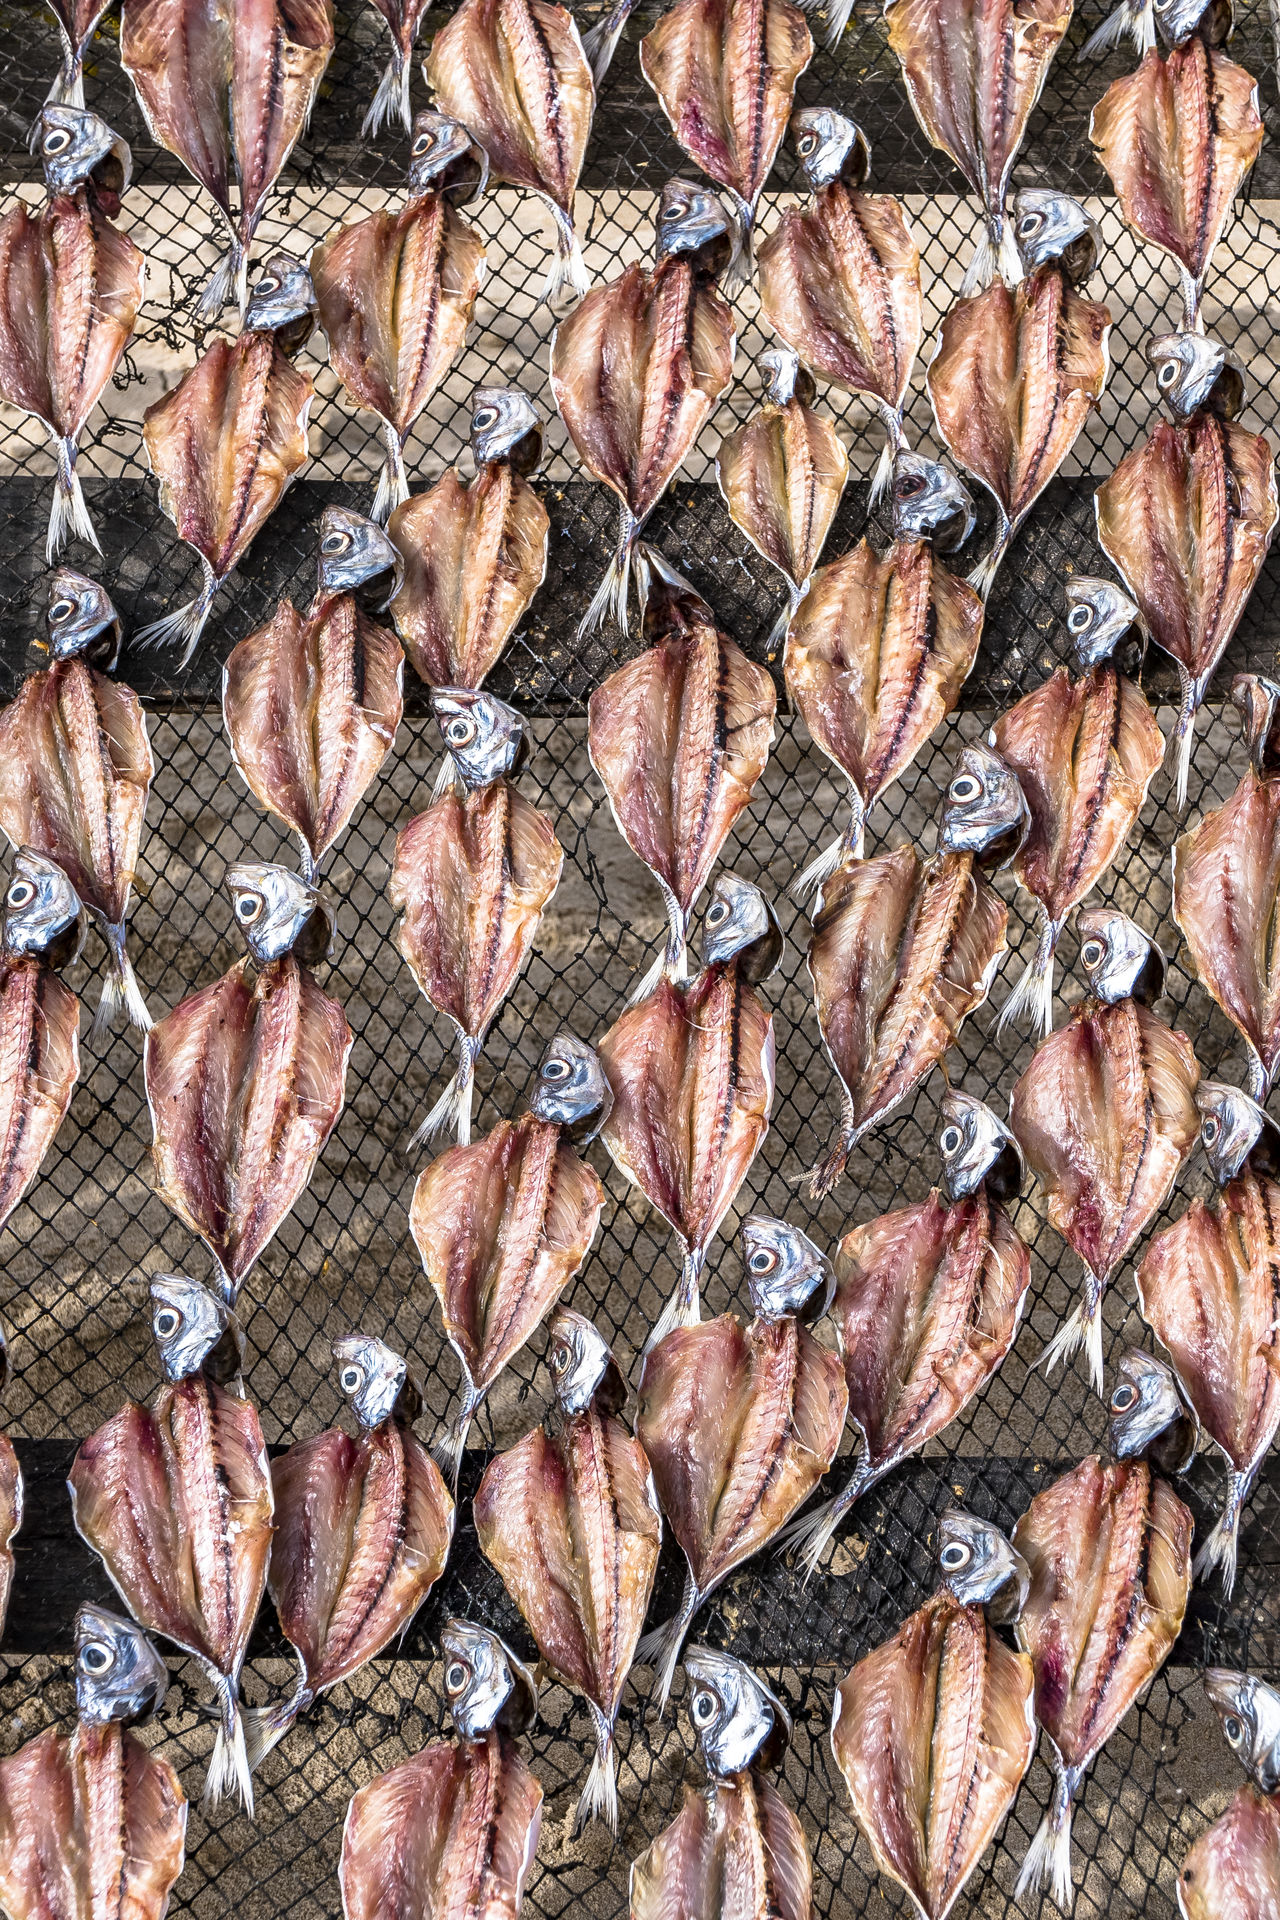 Dry fish in Nazaré Abundance Animal Themes Artesanal Backgrounds Beauty In Nature Close-up Day Dry Fish Escher Fish Fish Bones Fish Heads Full Frame Indoors  Large Group Of Animals Large Group Of Objects Nature No People Padron Pattern Portugal Repetion Sun Drying Fish Textured  Typical